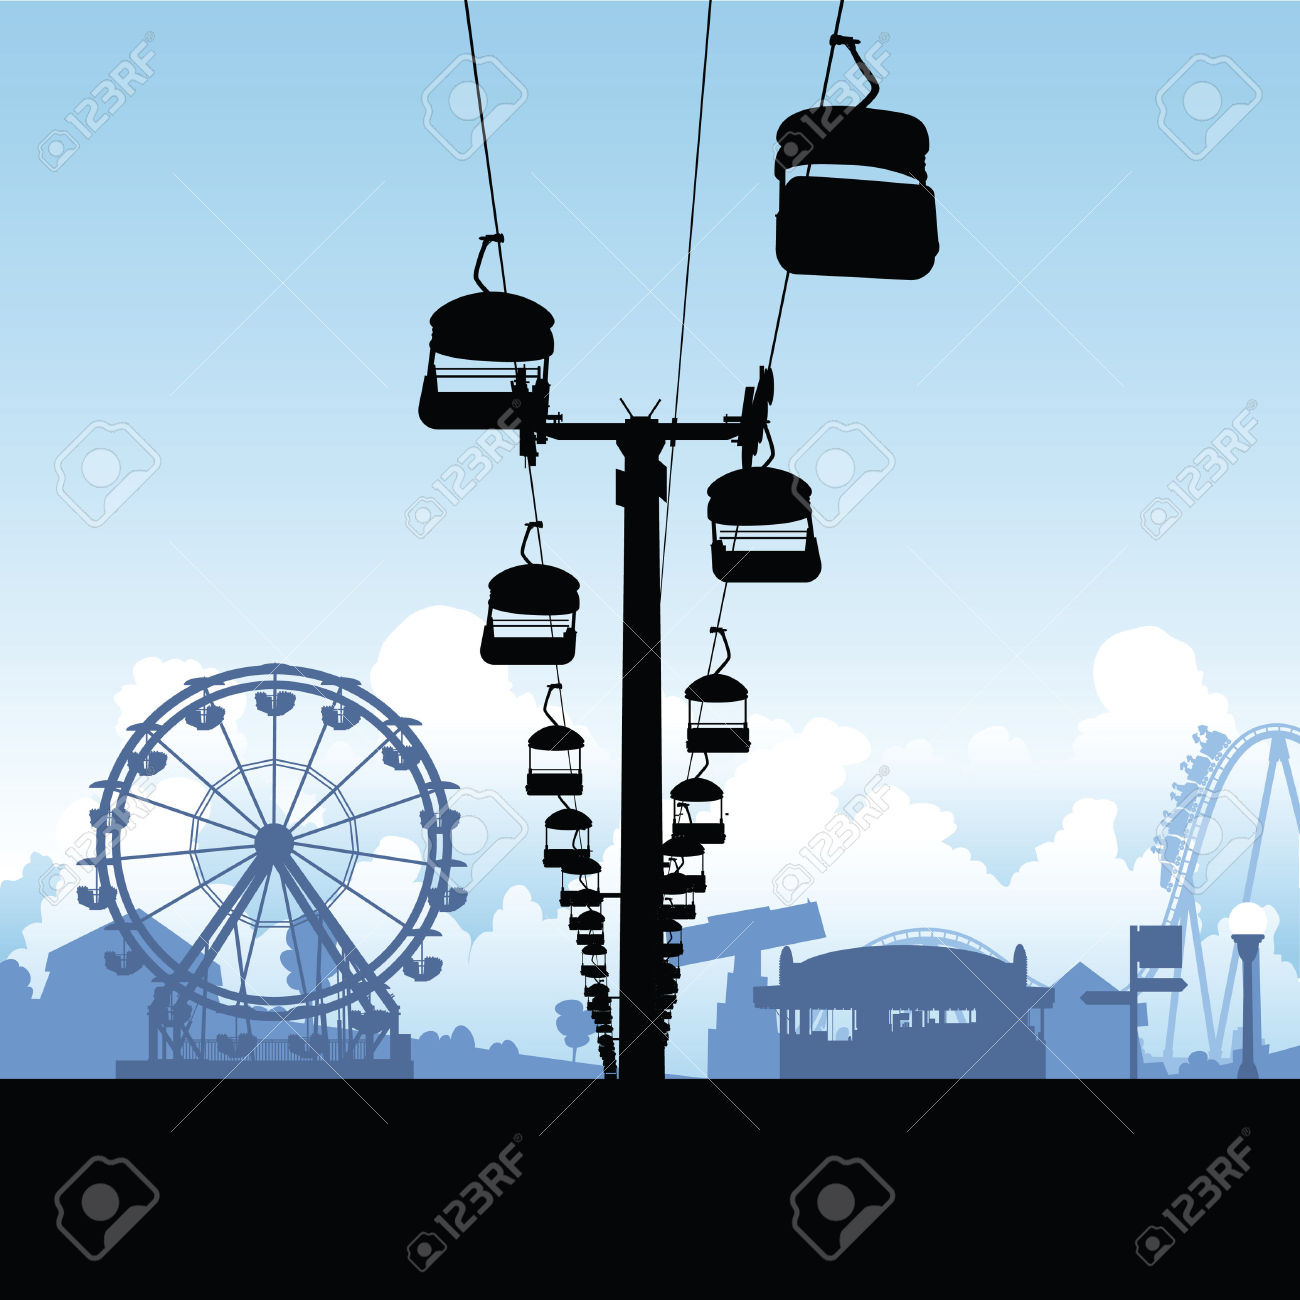 Silhouette Of A Chairlift Ride In An Amusement Midway. Royalty.